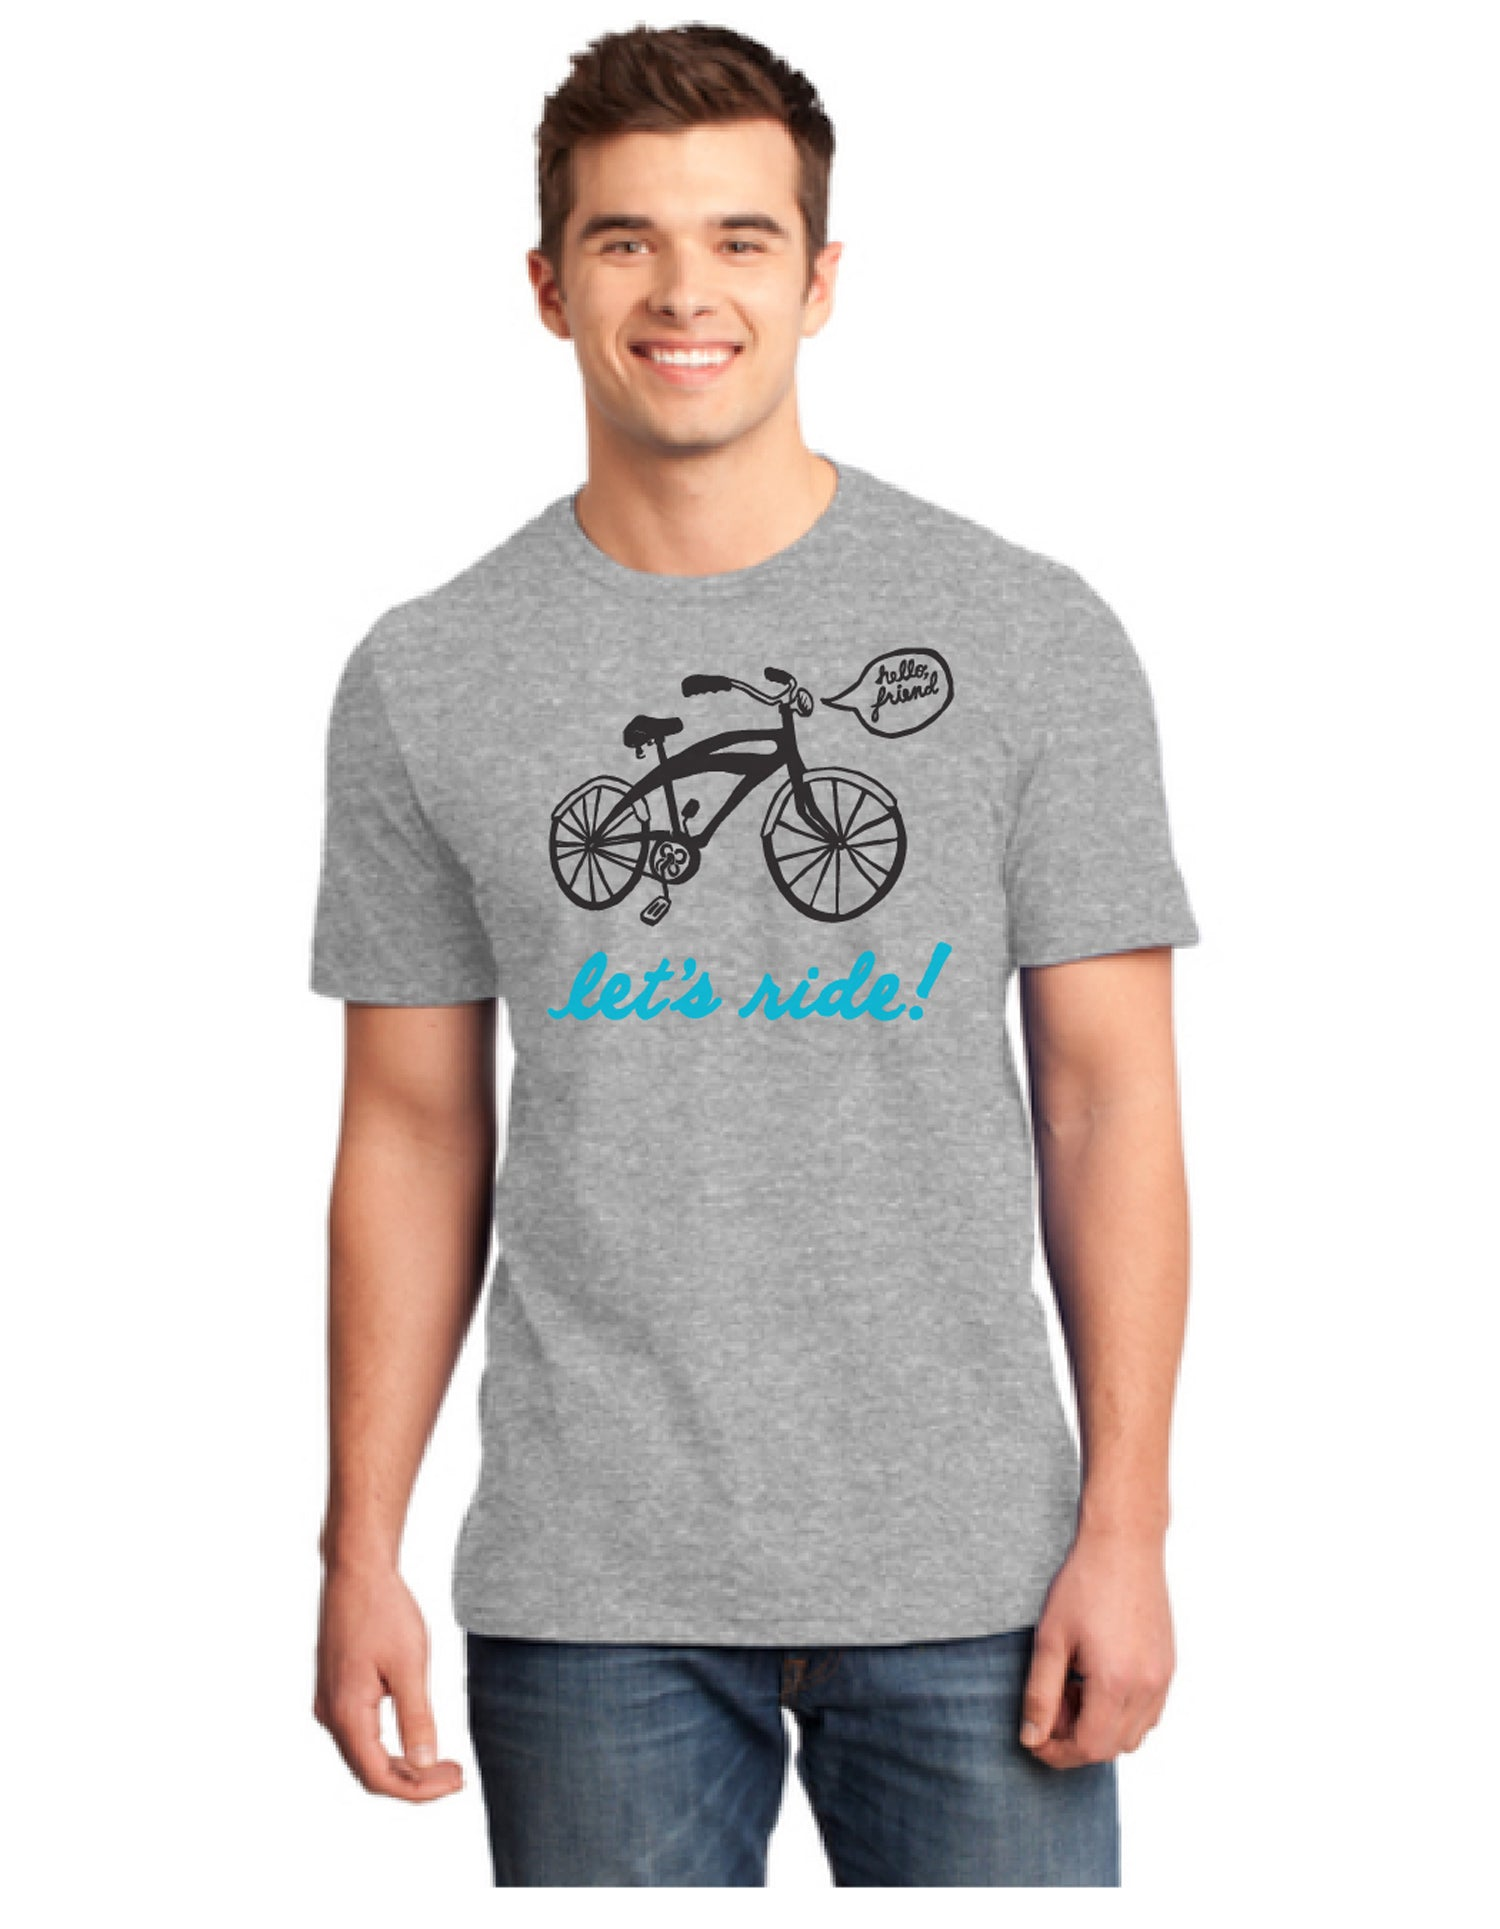 Let's Ride Bicycle, Short sleeve Crew Neck T-Shirt - MENS/UNISEX